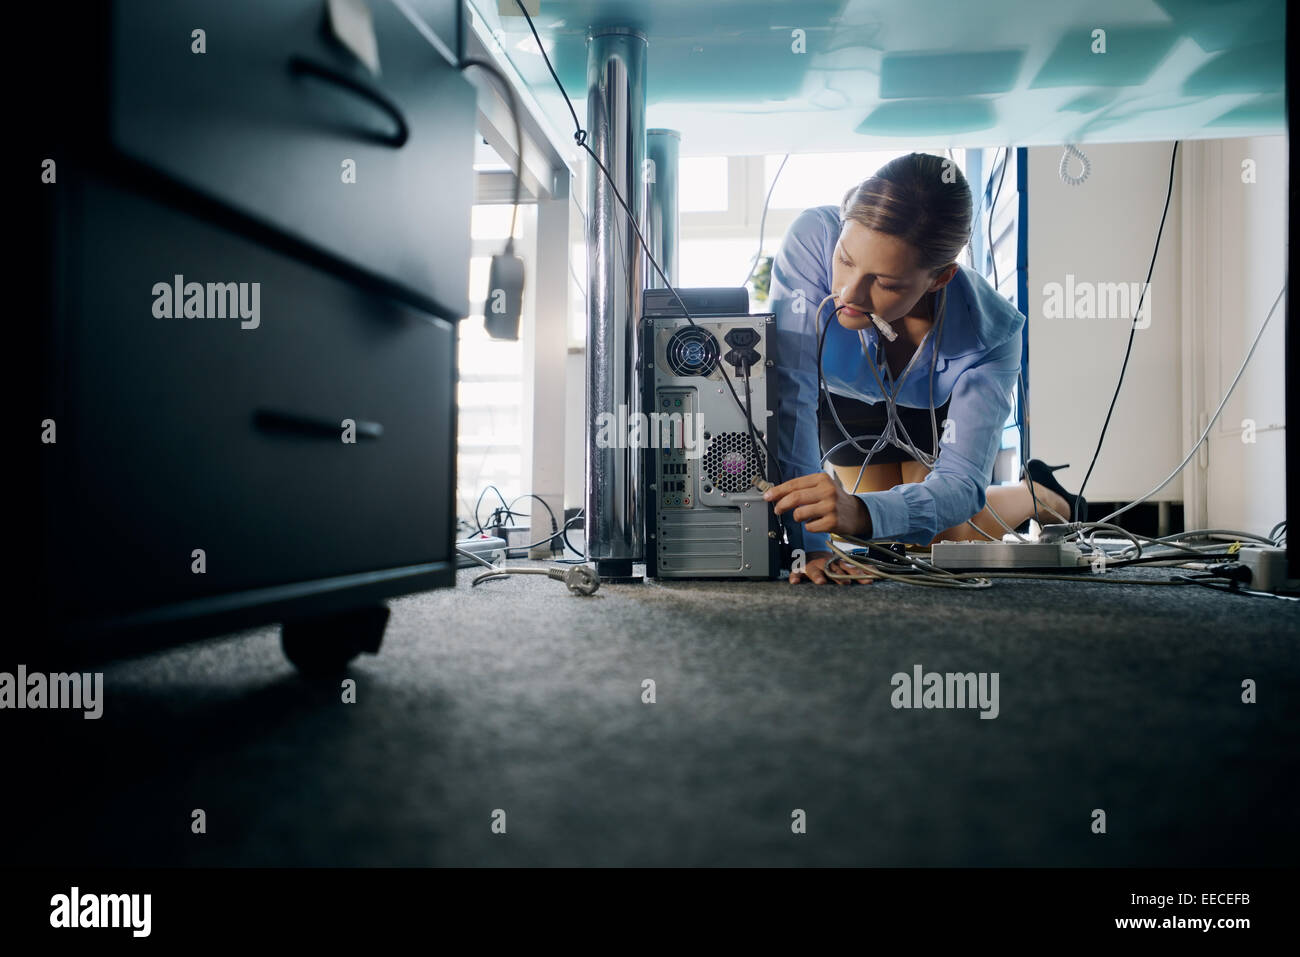 Female assistant working in office, plugging cables to computer and electronic equipment, messing around with wires. - Stock Image